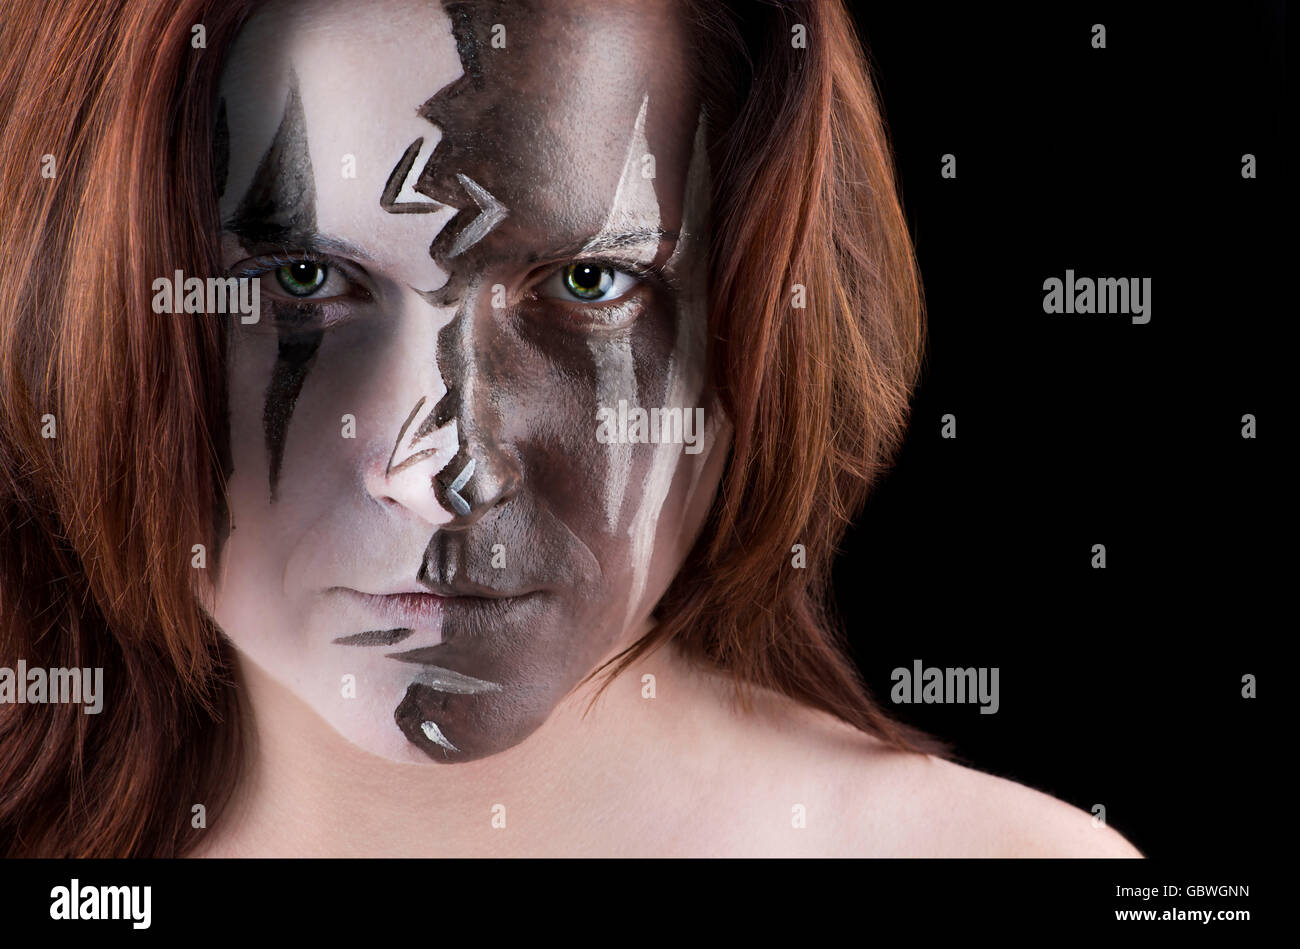 Portrait with face of woman with wild paint on it. - Stock Image